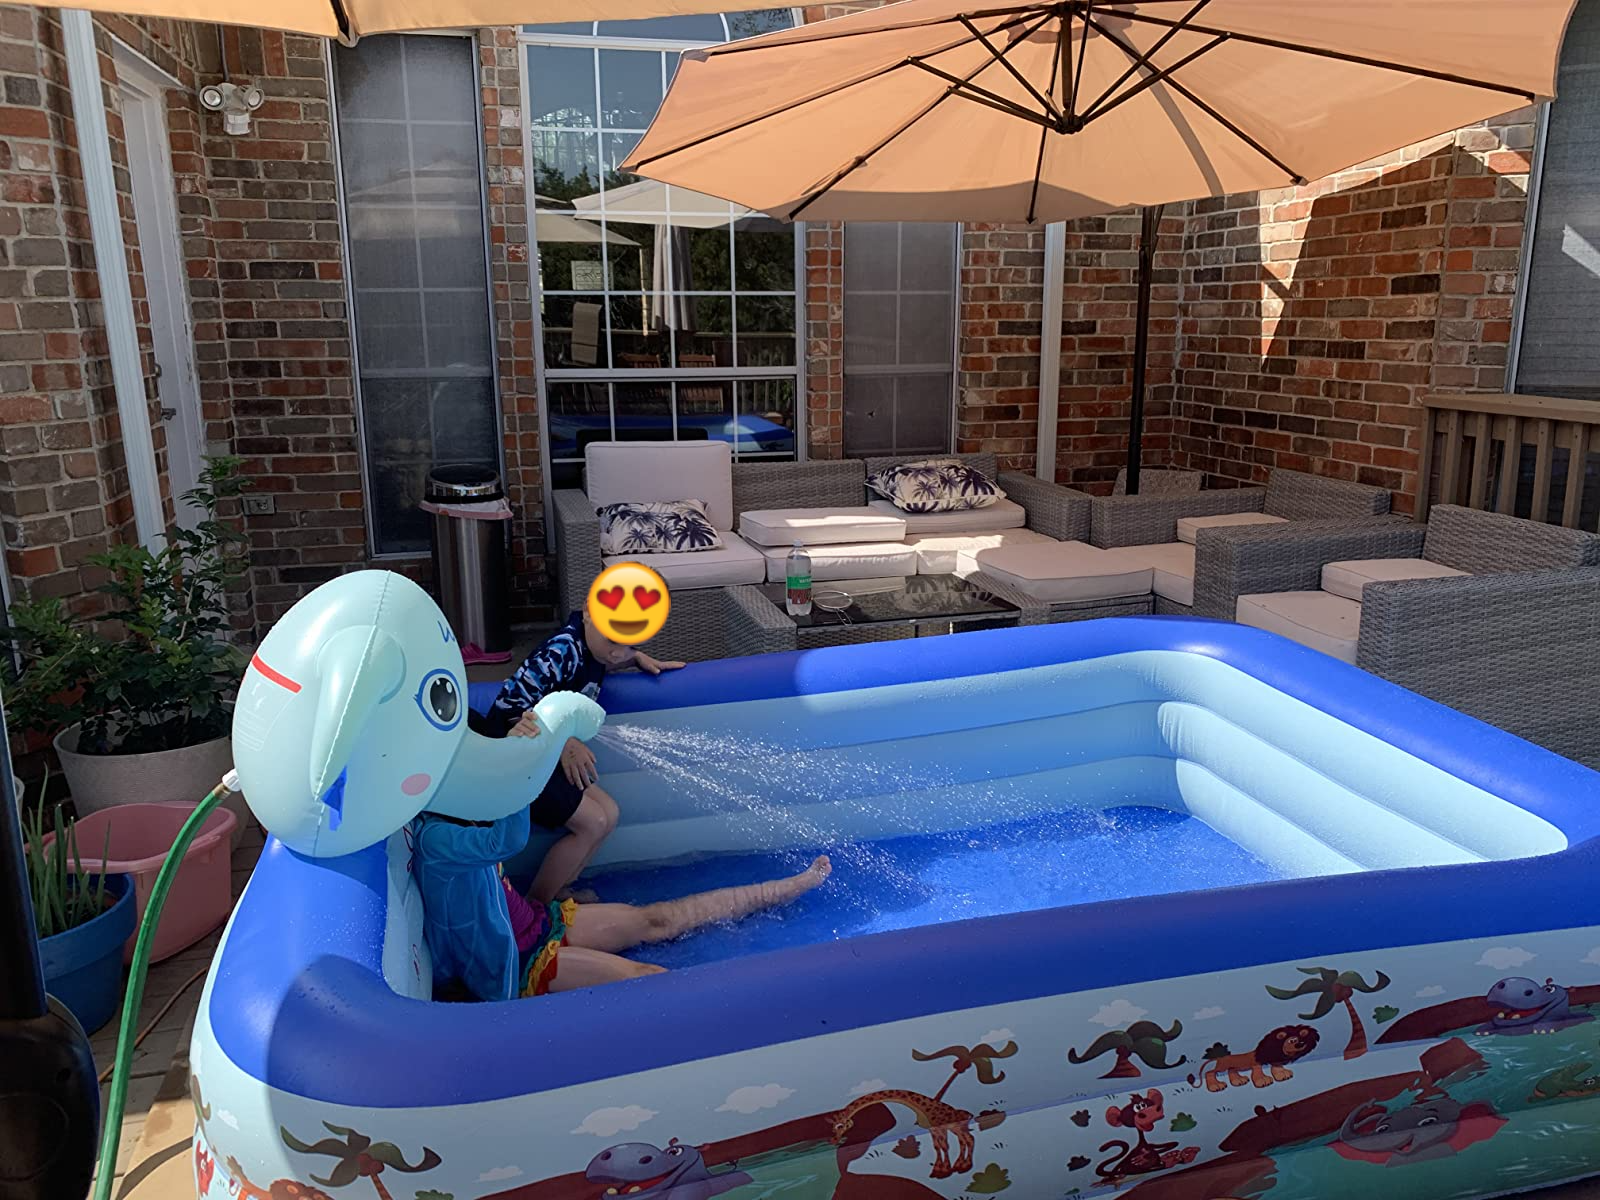 Reviewer's photo showing the kids using the pool in their back patio